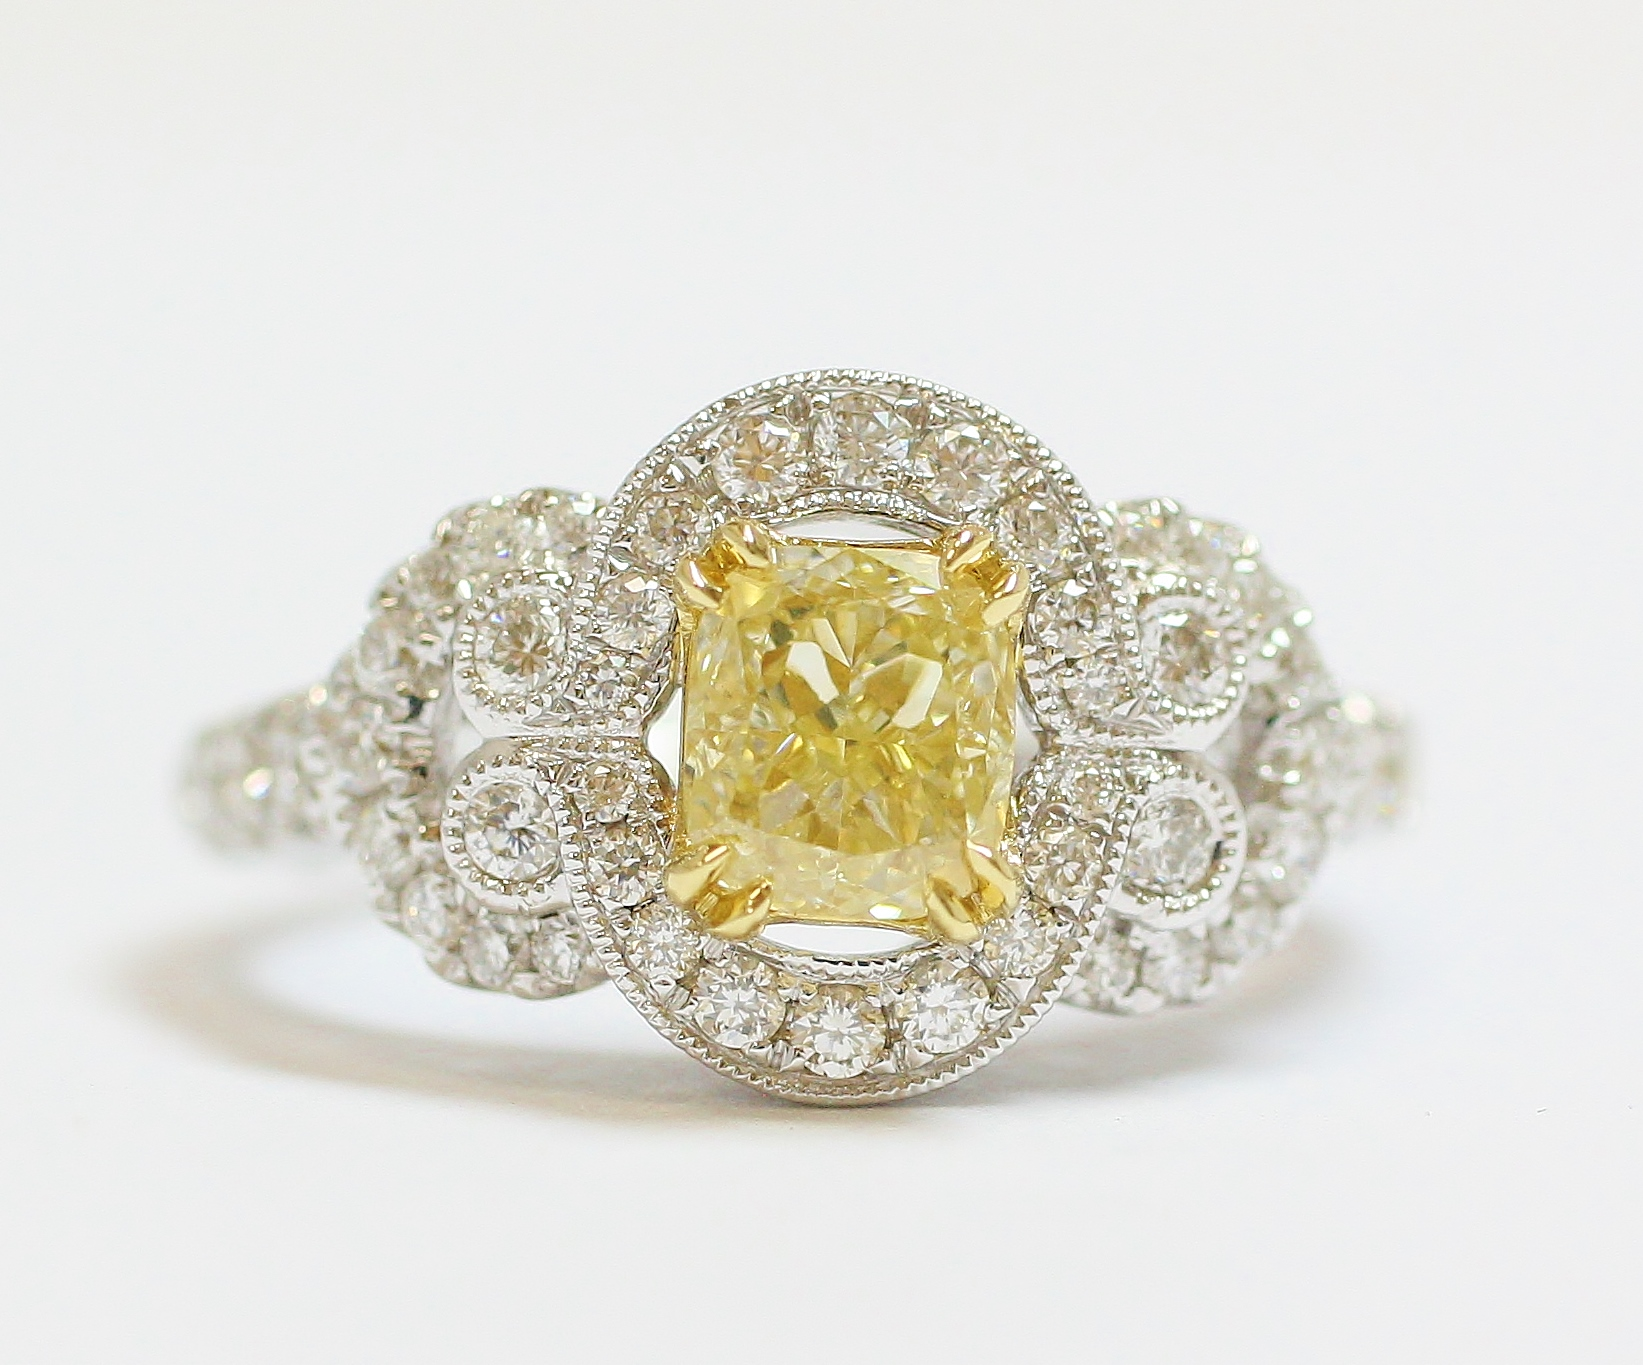 learn how to sell fine jewelry luxury watches in baton rouge la - Sell Wedding Ring